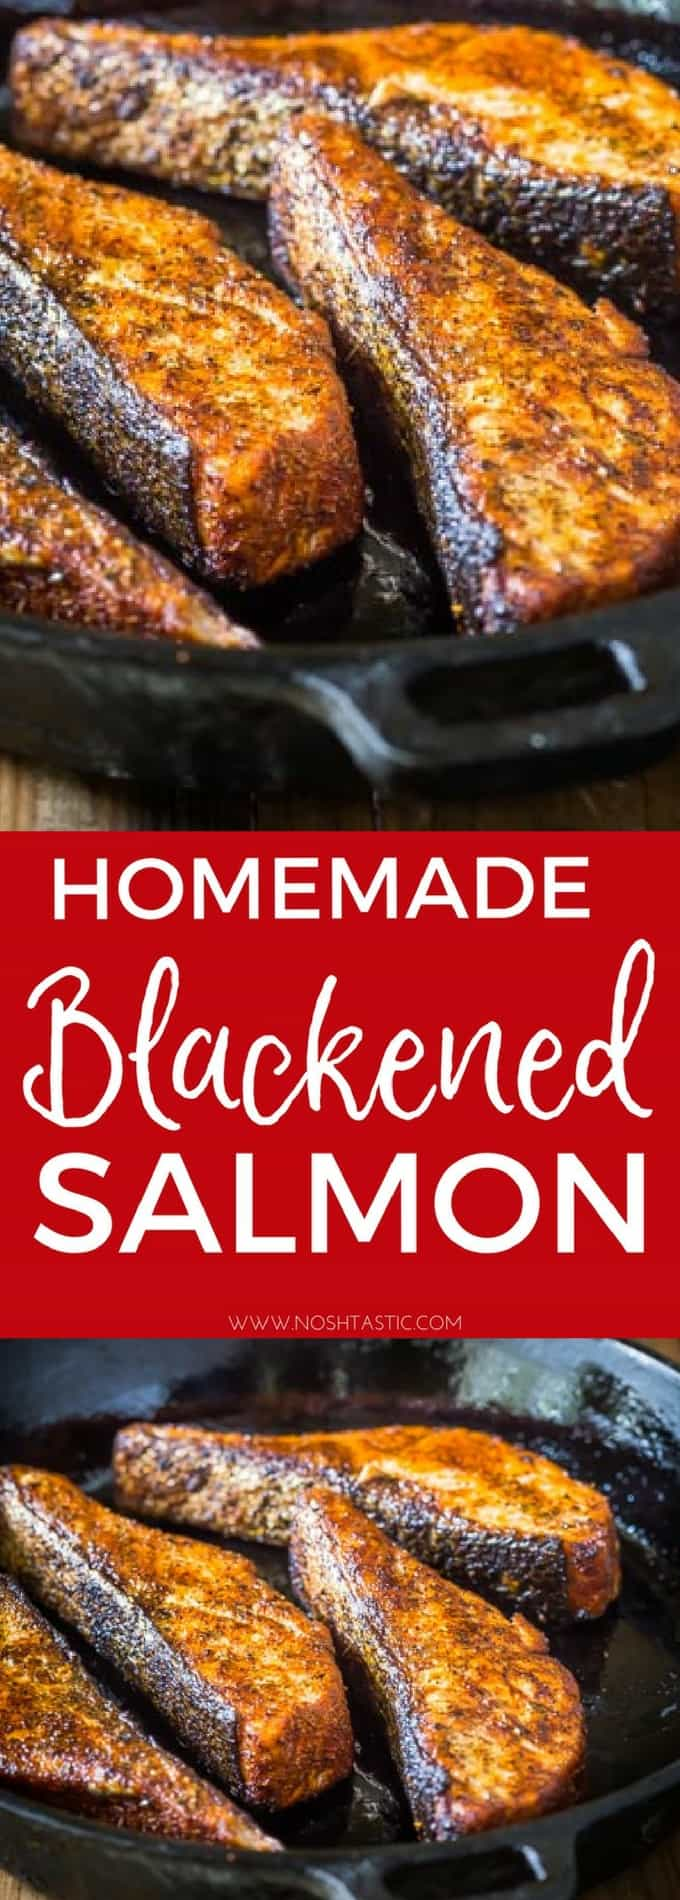 Blackened Salmon with Homemade Blackened Seasoning, an easy low carb, Paleo & Whole30 salmon recipe that you'll love! #paleo #whole30 #glutenfree #lowcarb #keto #ketogenicdiet #Paleosalmon #whole30salmon #salmon #fish #castironskillet